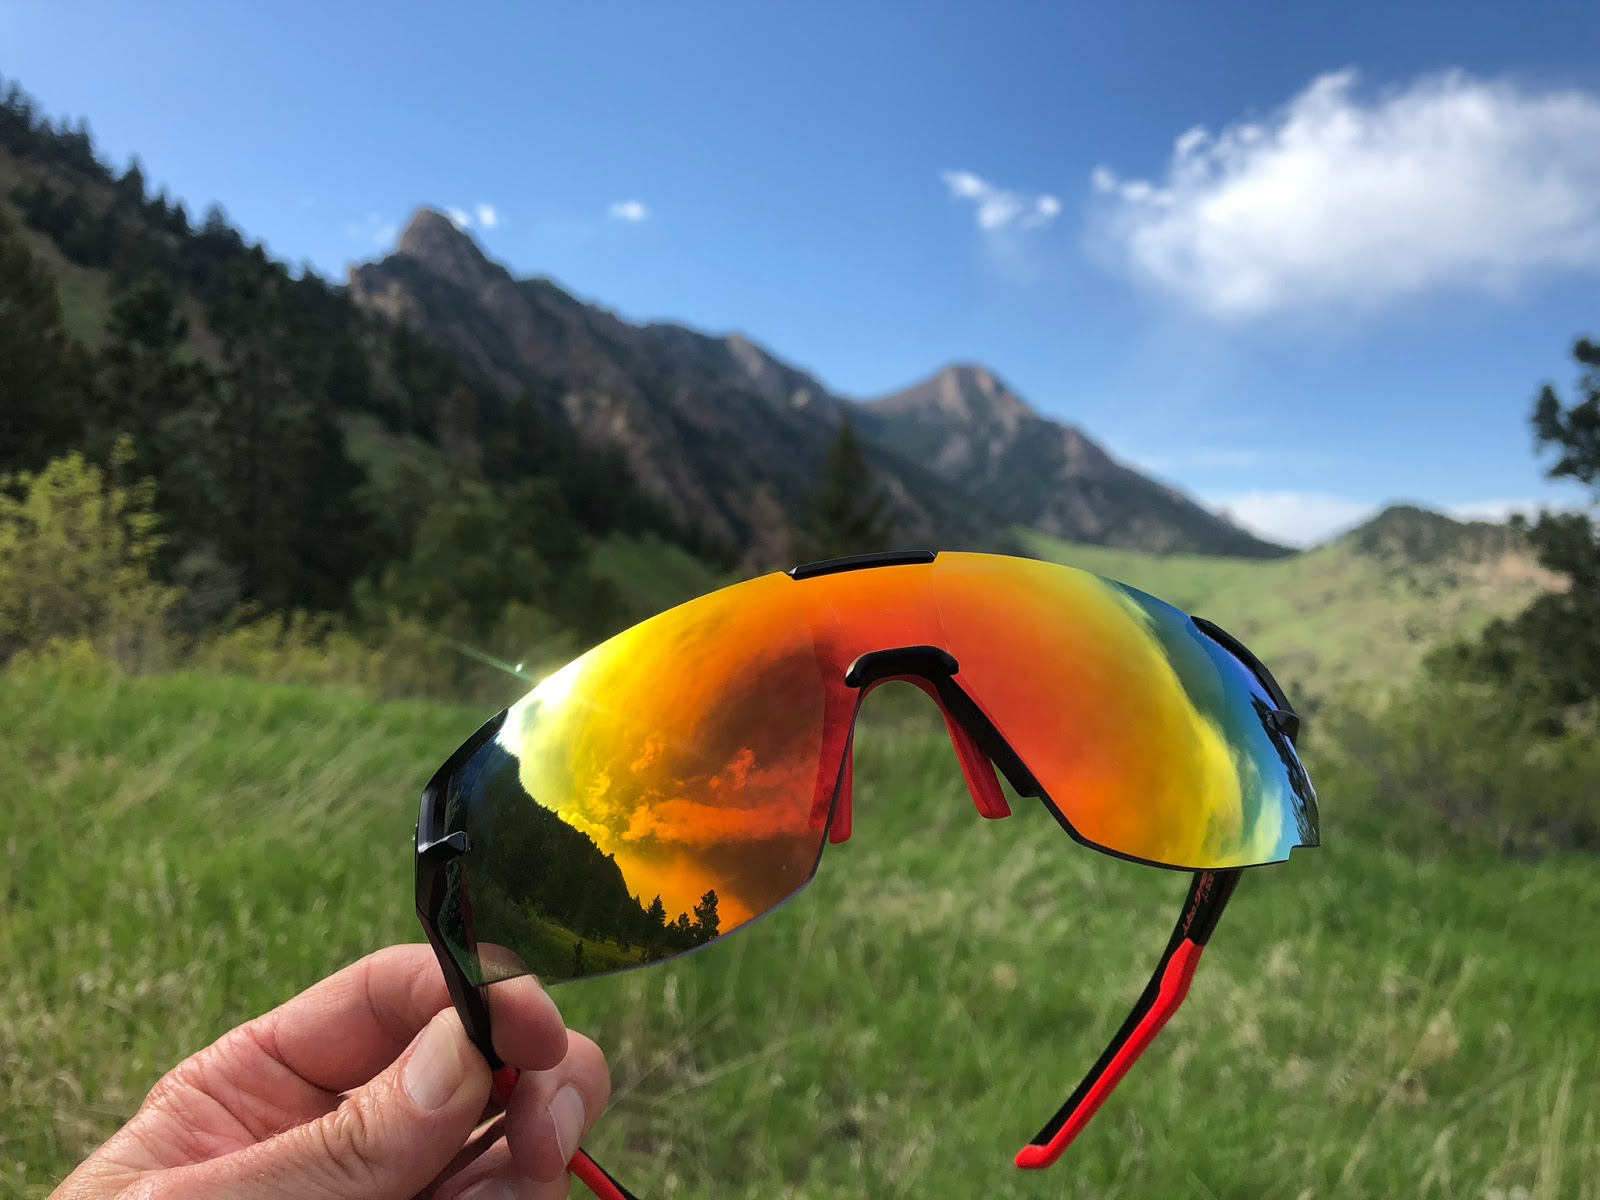 f31b3a5edb Julbo Aerospeed with Zebra Light Fire Photochromic Lens Sunglass Review - A  Grand View and Unbeatable Any Light Versatility